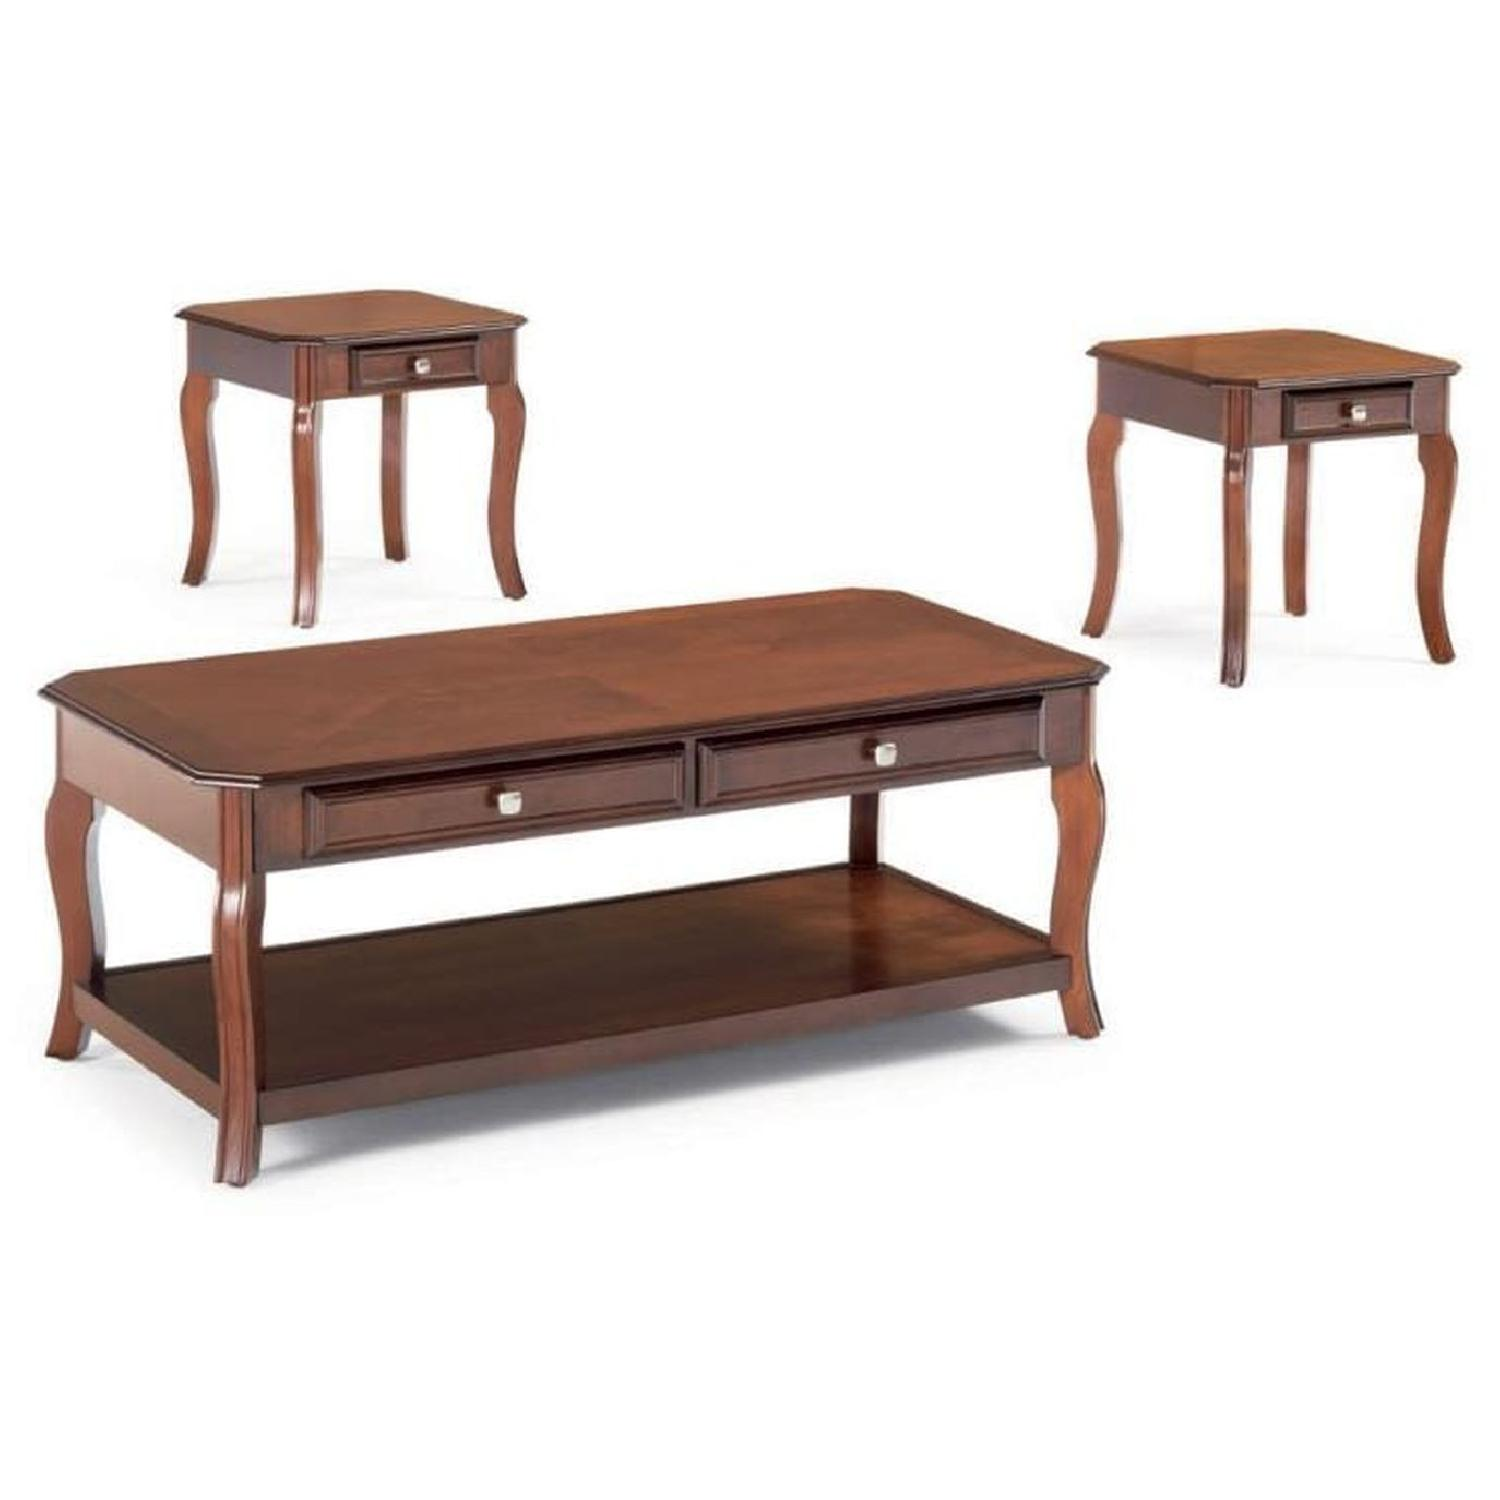 3-Piece Coffee & End Table Set in Warm Bourbon Finish - image-0